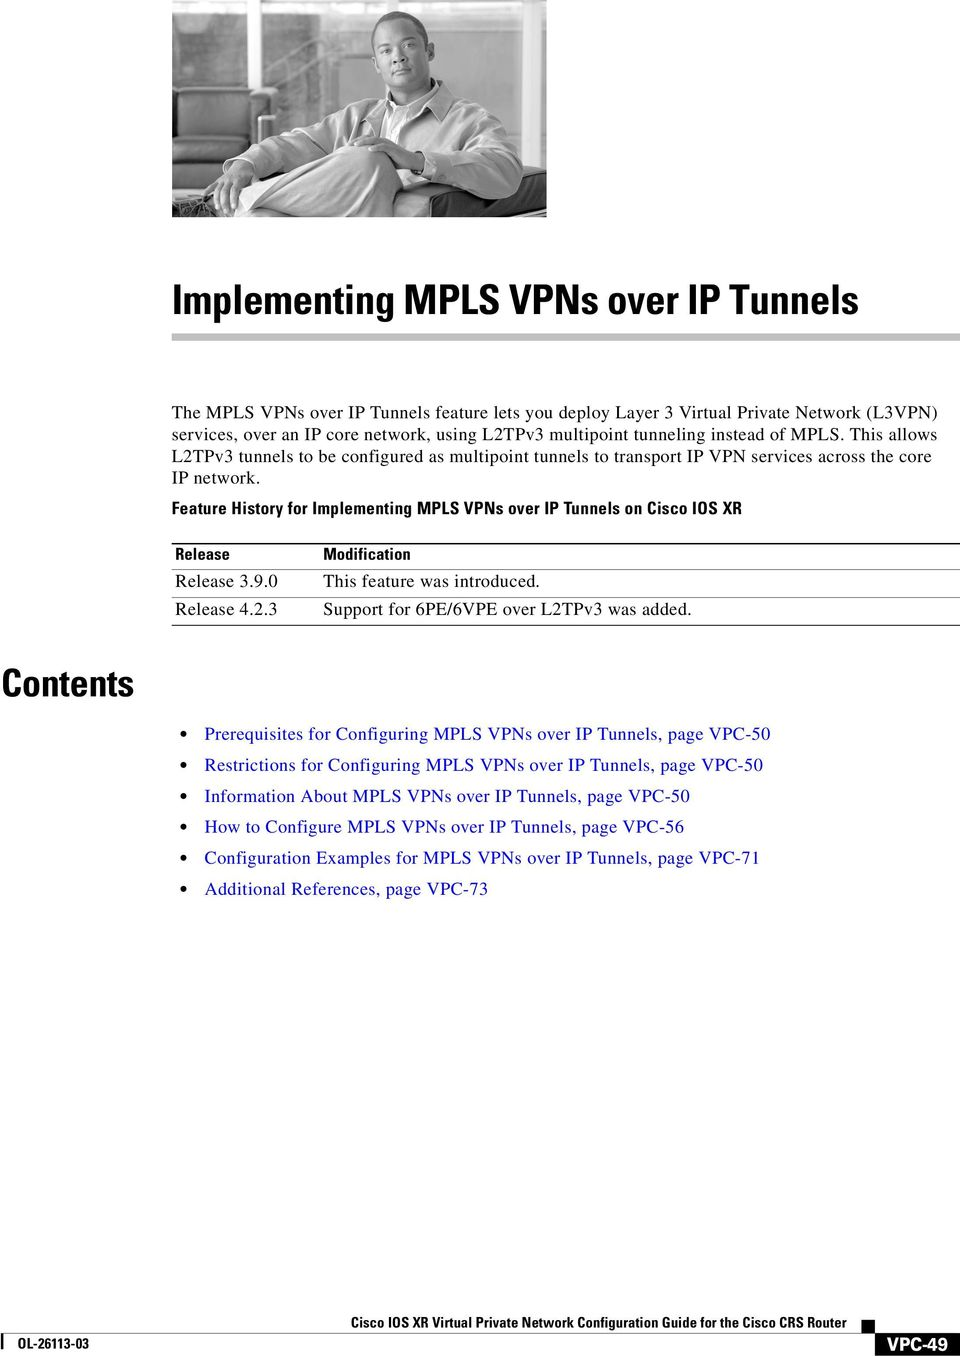 Implementing MPLS VPNs over IP Tunnels - PDF